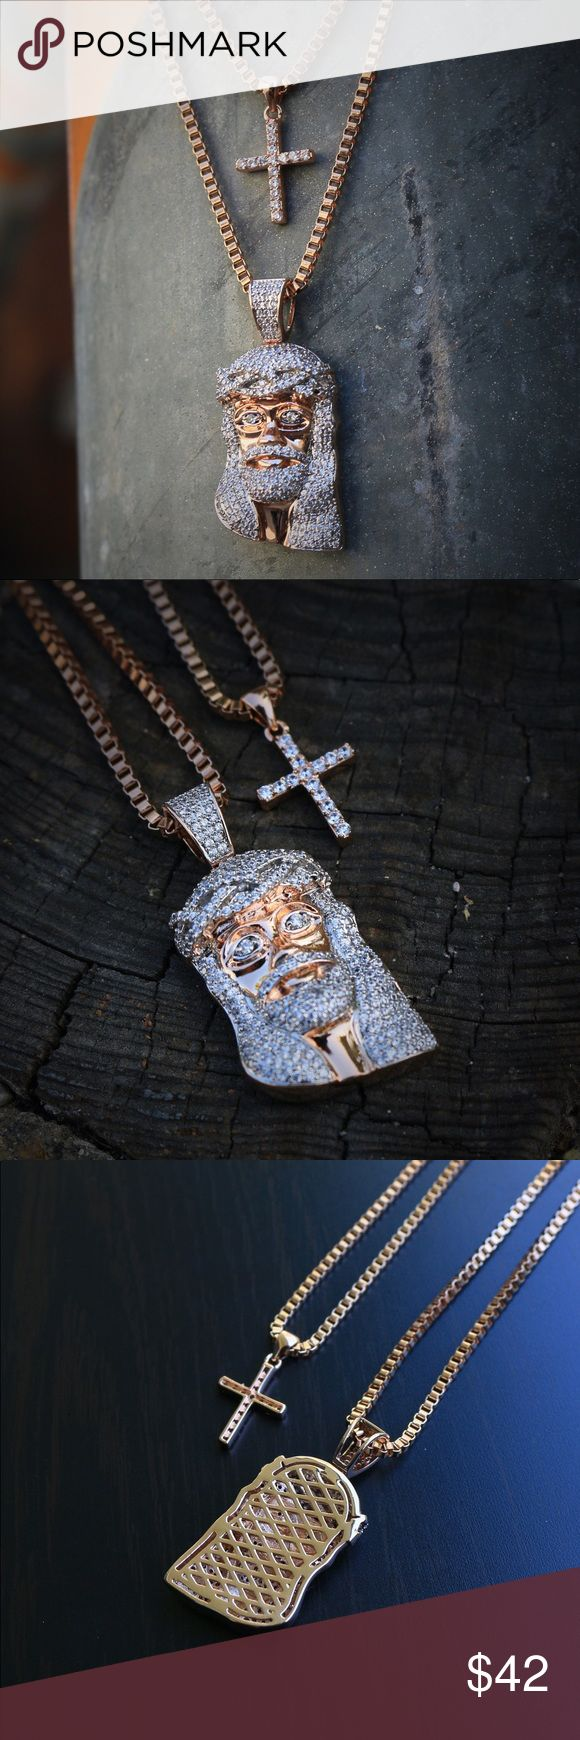 Rose Gold Jesus Piece And Cross Necklace Combo Set Mini Rose Gold Jesus Piece And Cross Necklace Combo Set    This combo set includes one jesus piece pendant and one cross pendant with two chains.    Chain is rose gold plated over 316 stainless steel.    Pendant size is 30mm in length (small).    Comes with two 2mm width 24 and 26 inch length rose gold plated stainless steel box chain TSV Jewelers Accessories Jewelry